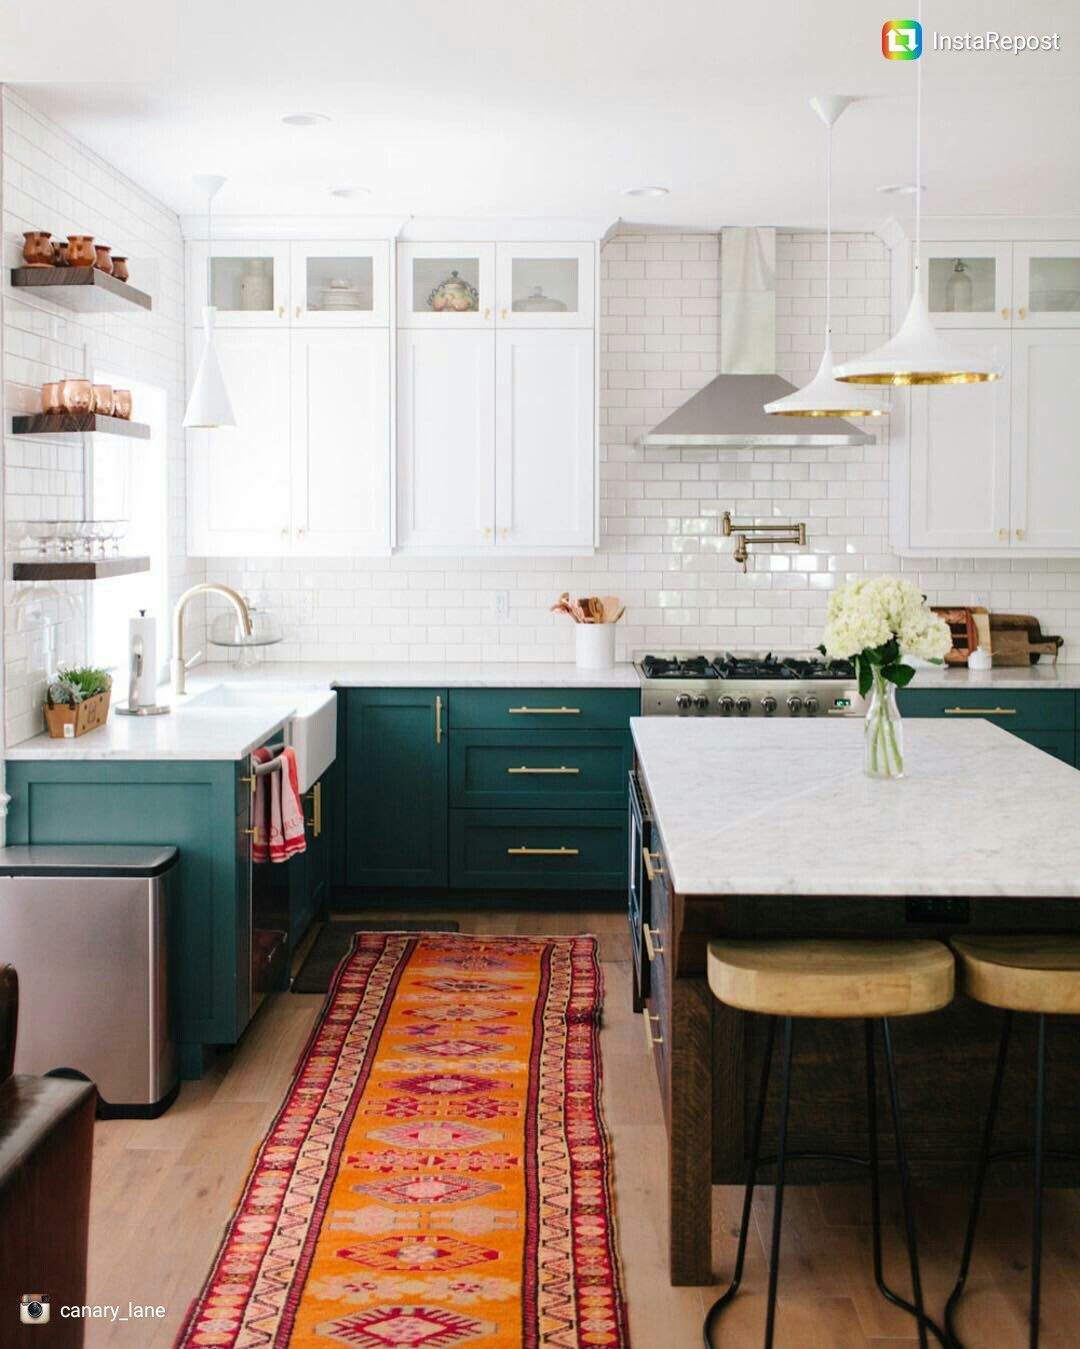 White Upper Cabinets Dark Teal Lower Cabinets Small Cabinets Near Ceiling Jewel Colored Rug Green Kitchen Cabinets Kitchen Inspirations New Kitchen Cabinets